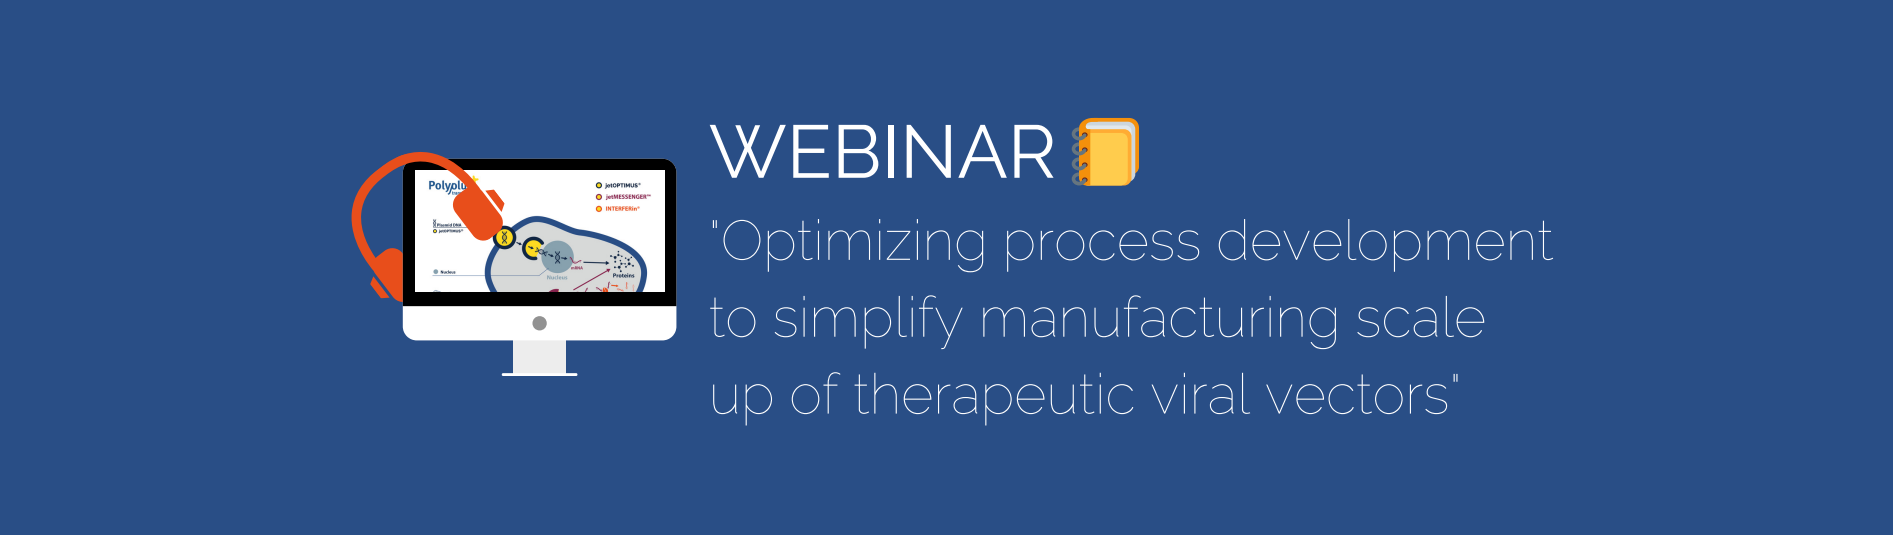 Optimizing process development to simplify manufacturing scale-up of therapeutic viral vectors